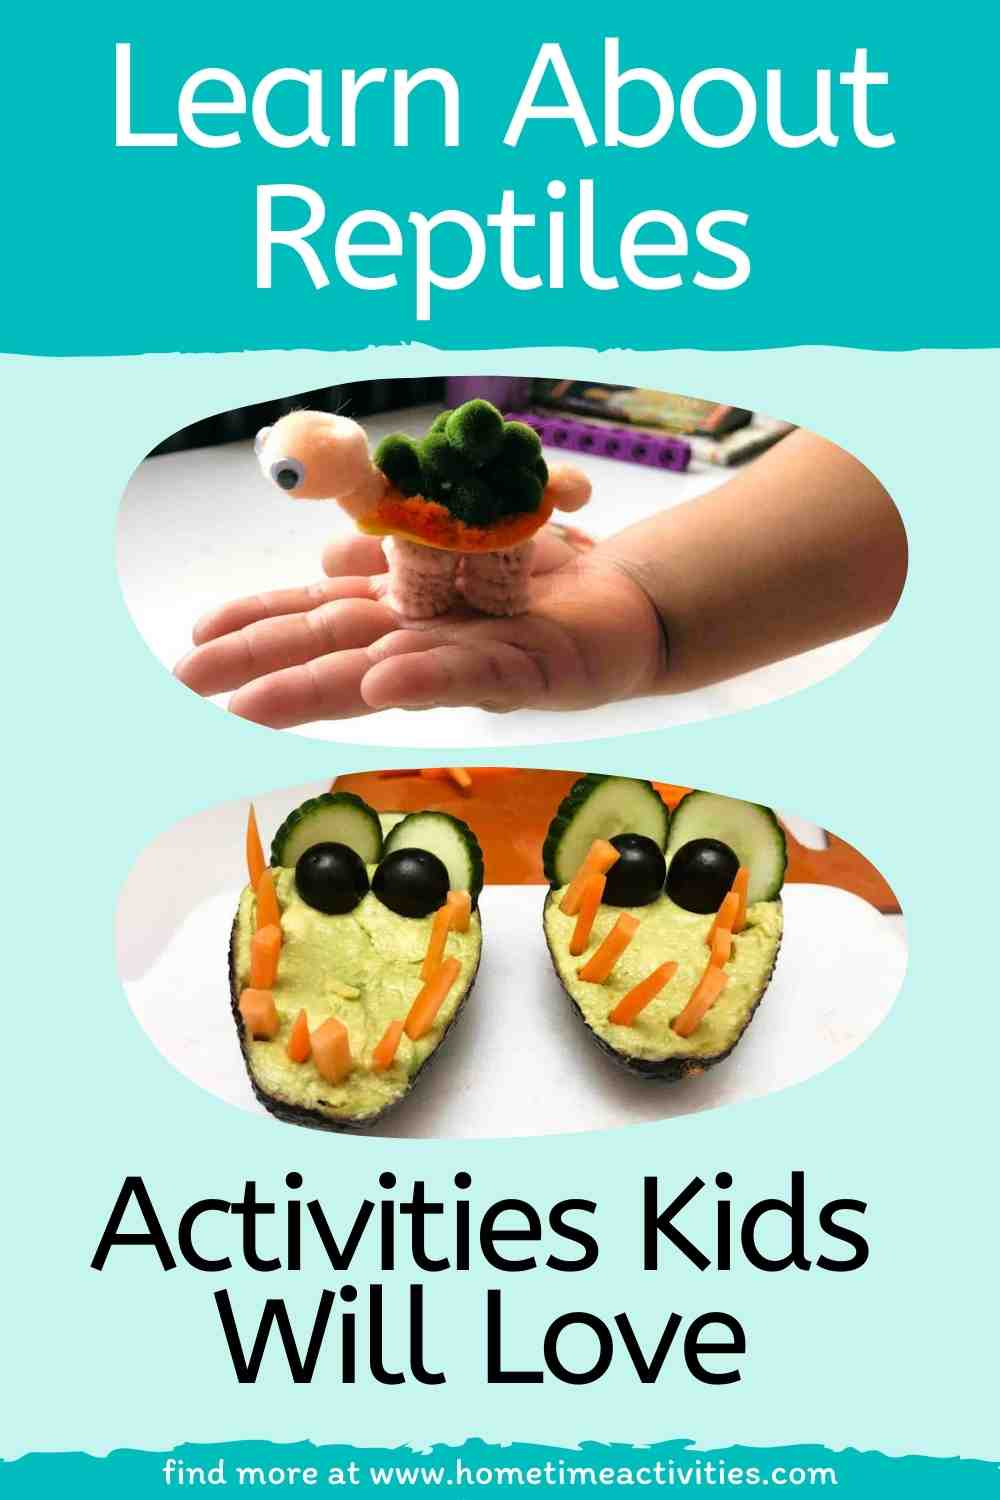 Learn All About Reptiles for Kids - Including Activities, Crafts, and an Experiment - Feature image with text